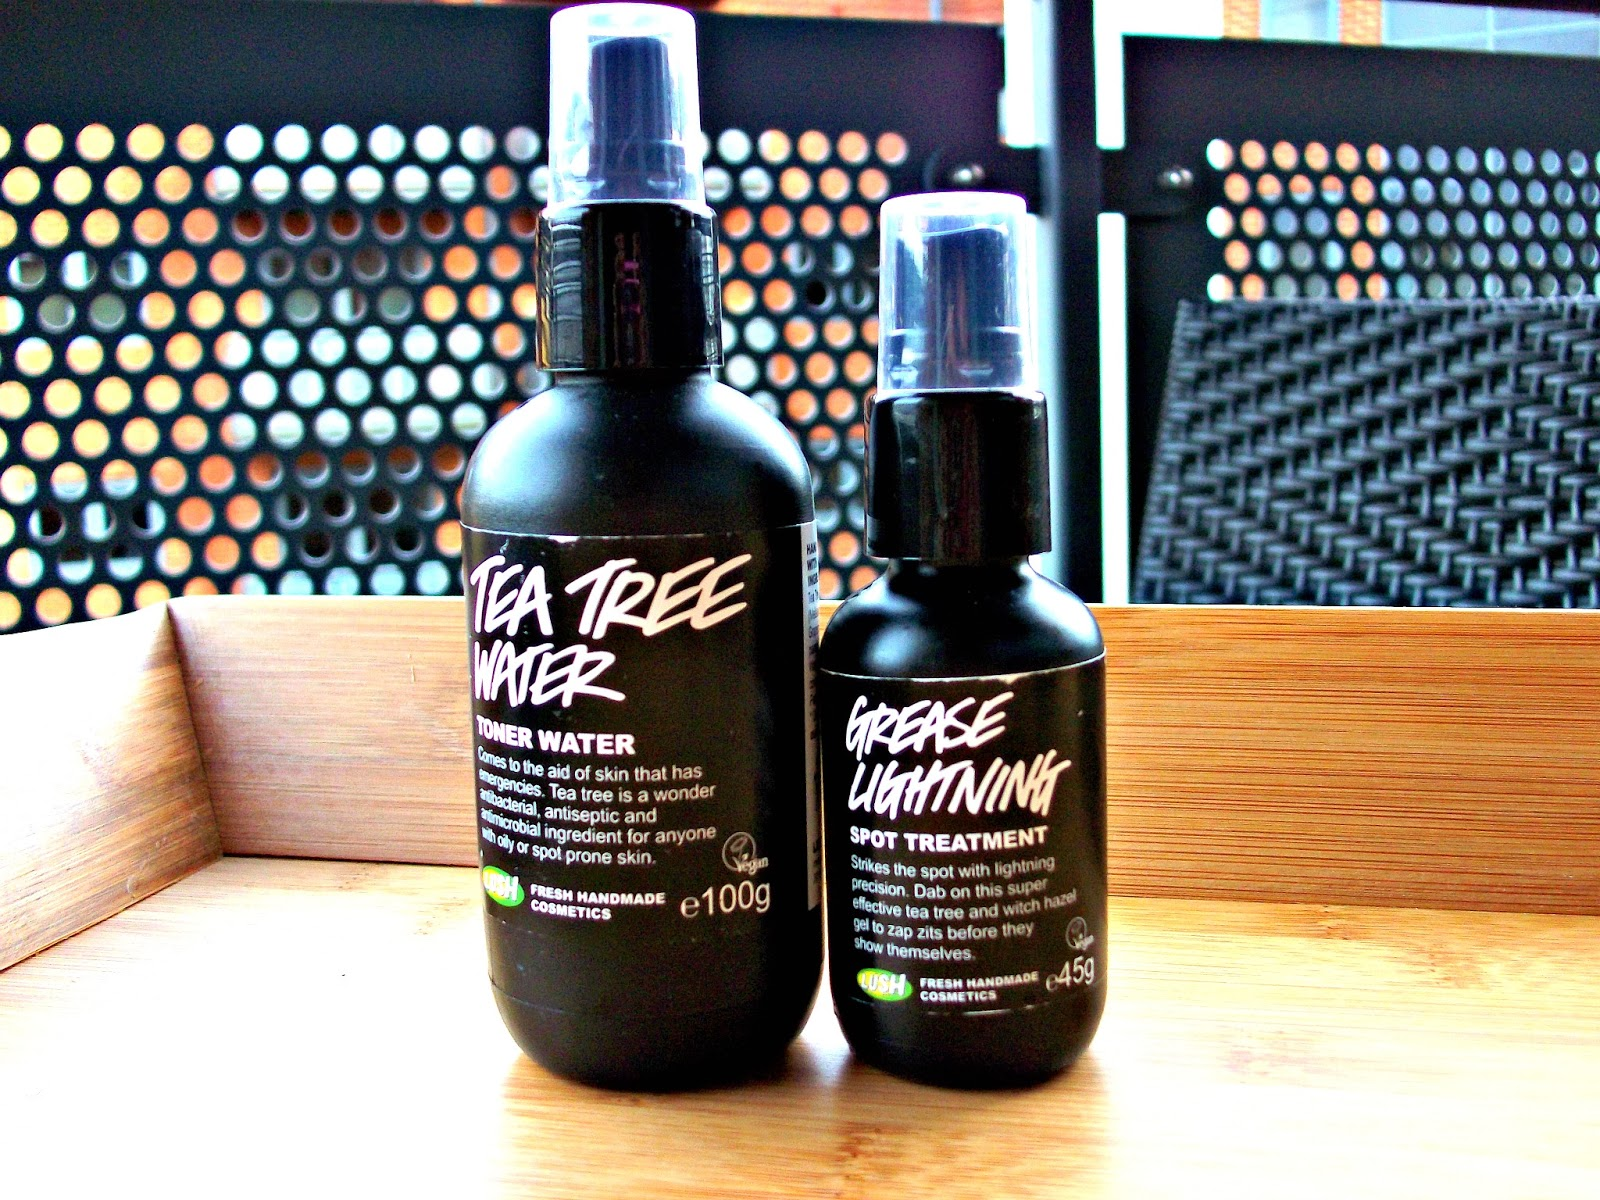 Lush Tea Tree Toner and Lush Grease Lightning Spot Treatment Review & FashStyleLiv: Lush Tea Tree Toner and Lush Grease Lightning Spot ...